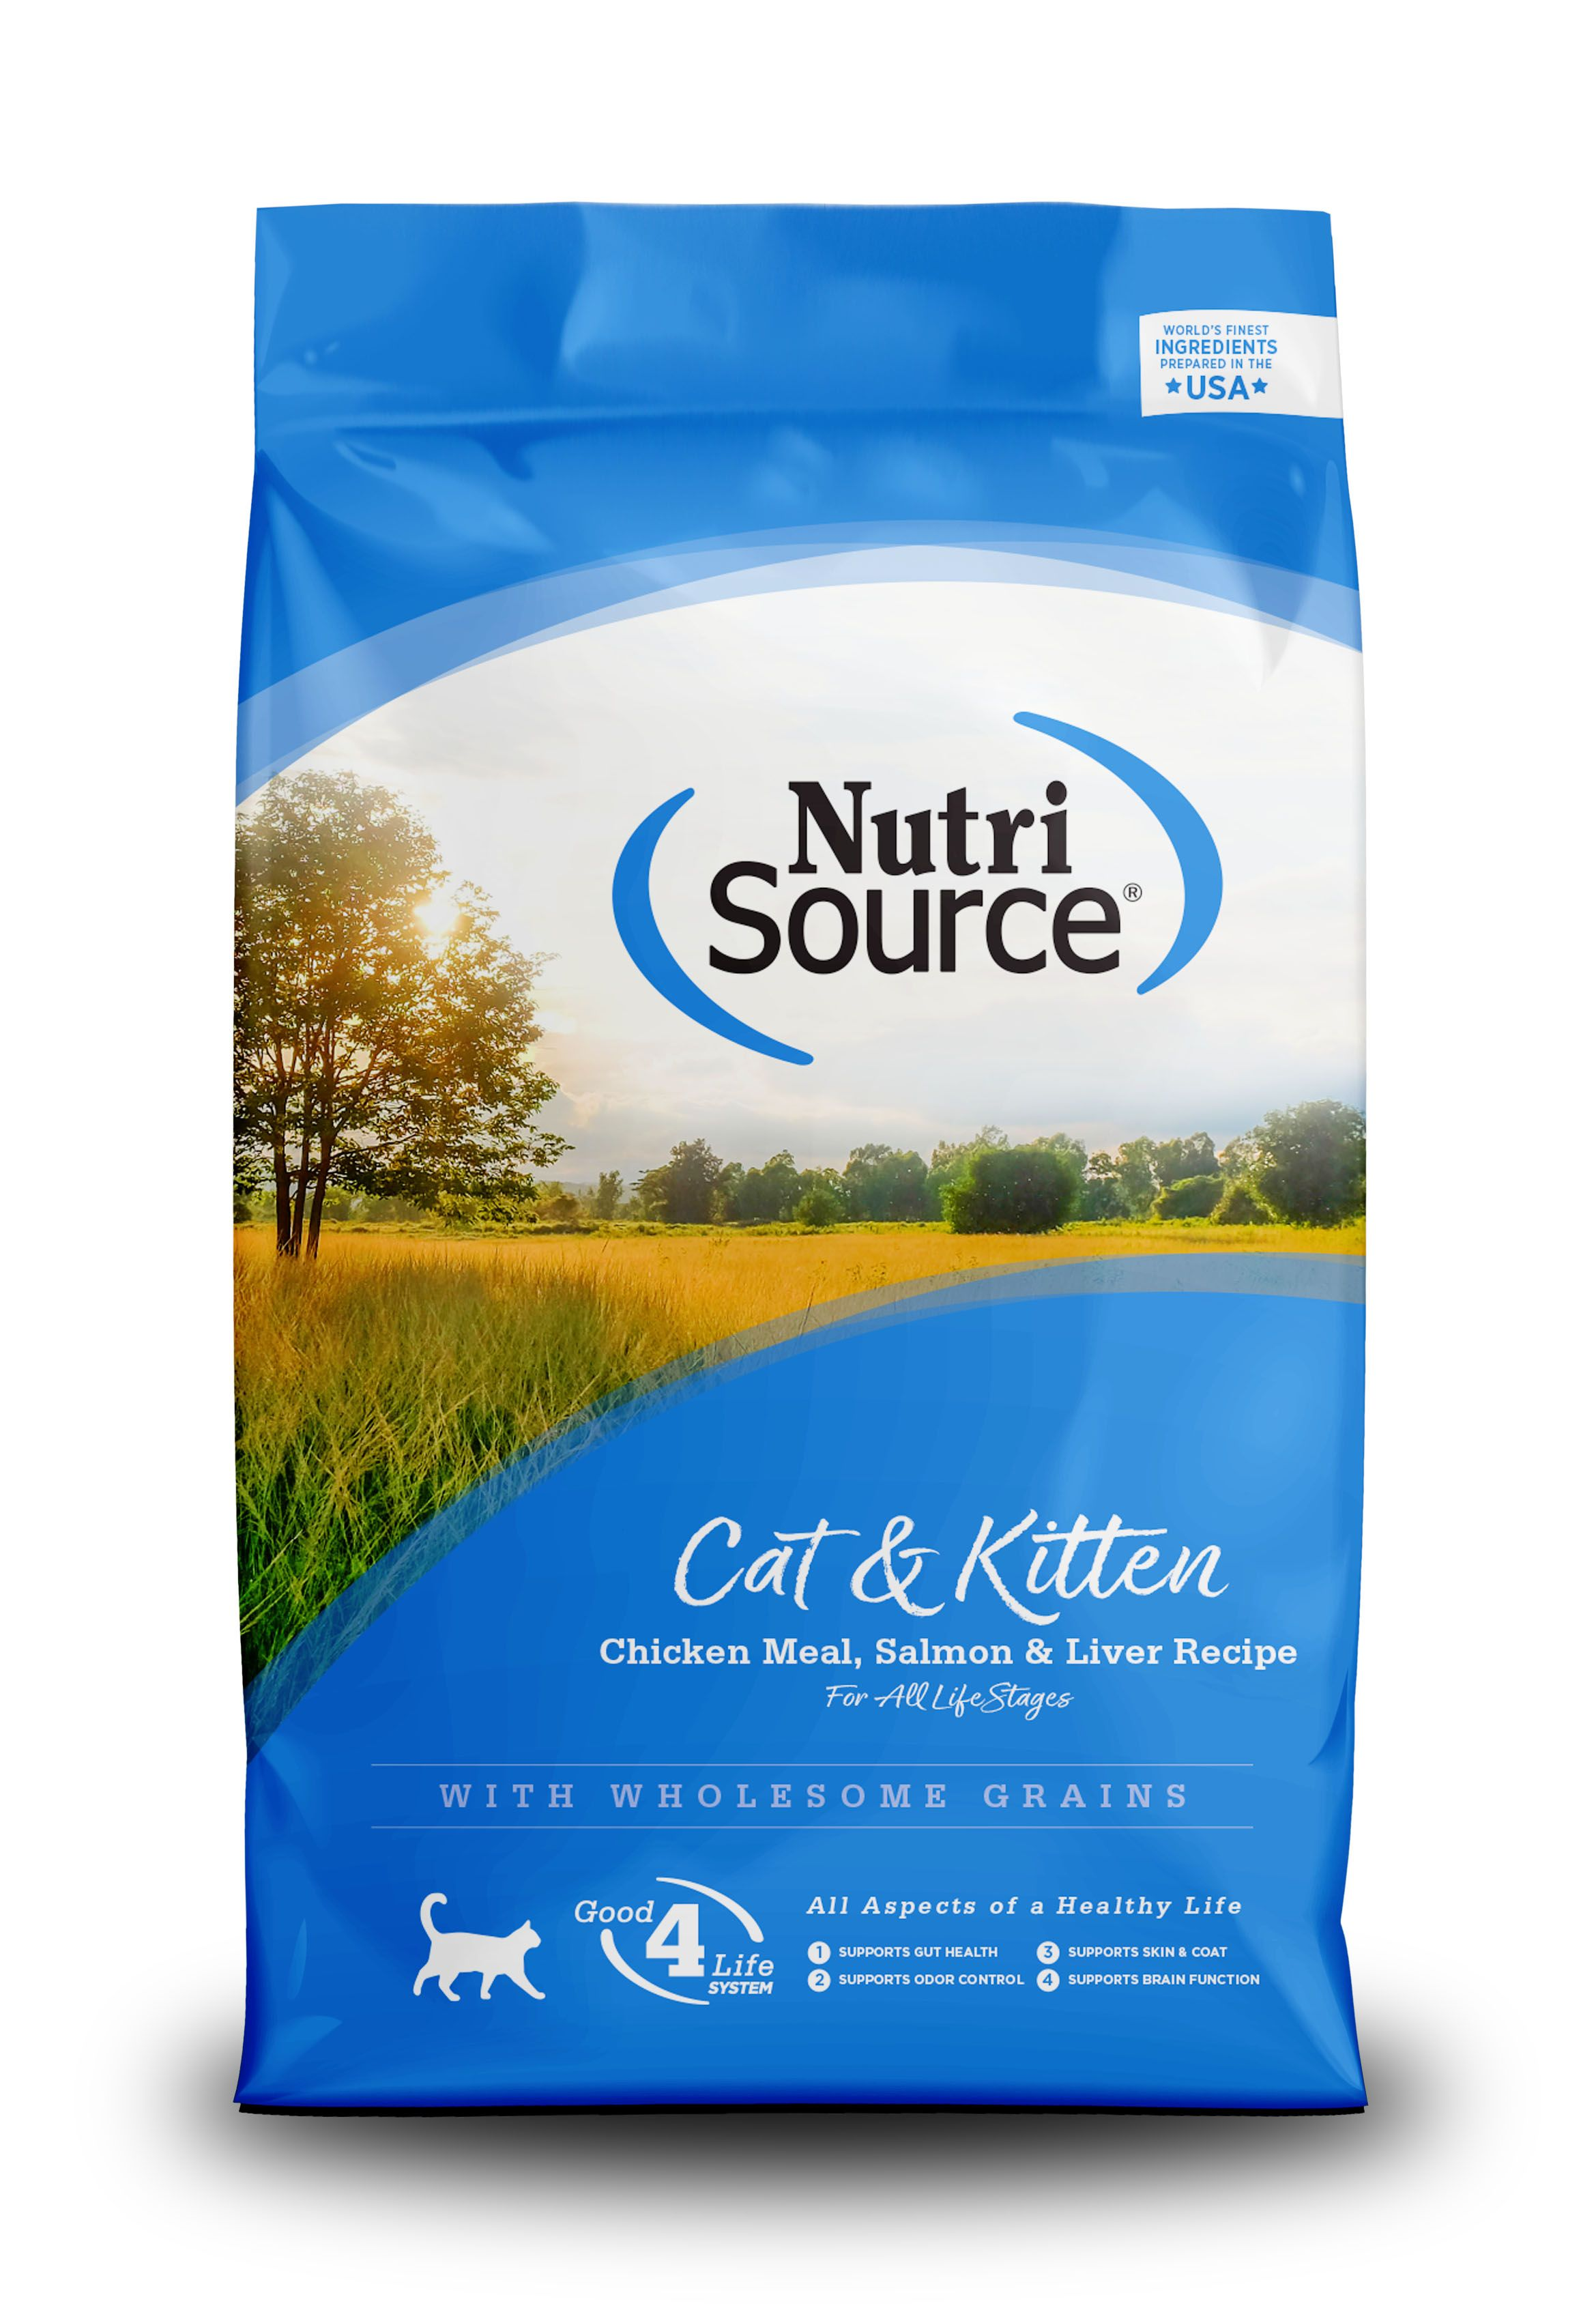 NutriSource Cat and Kitten Chicken Salmon and Liver Dry Cat Food Image